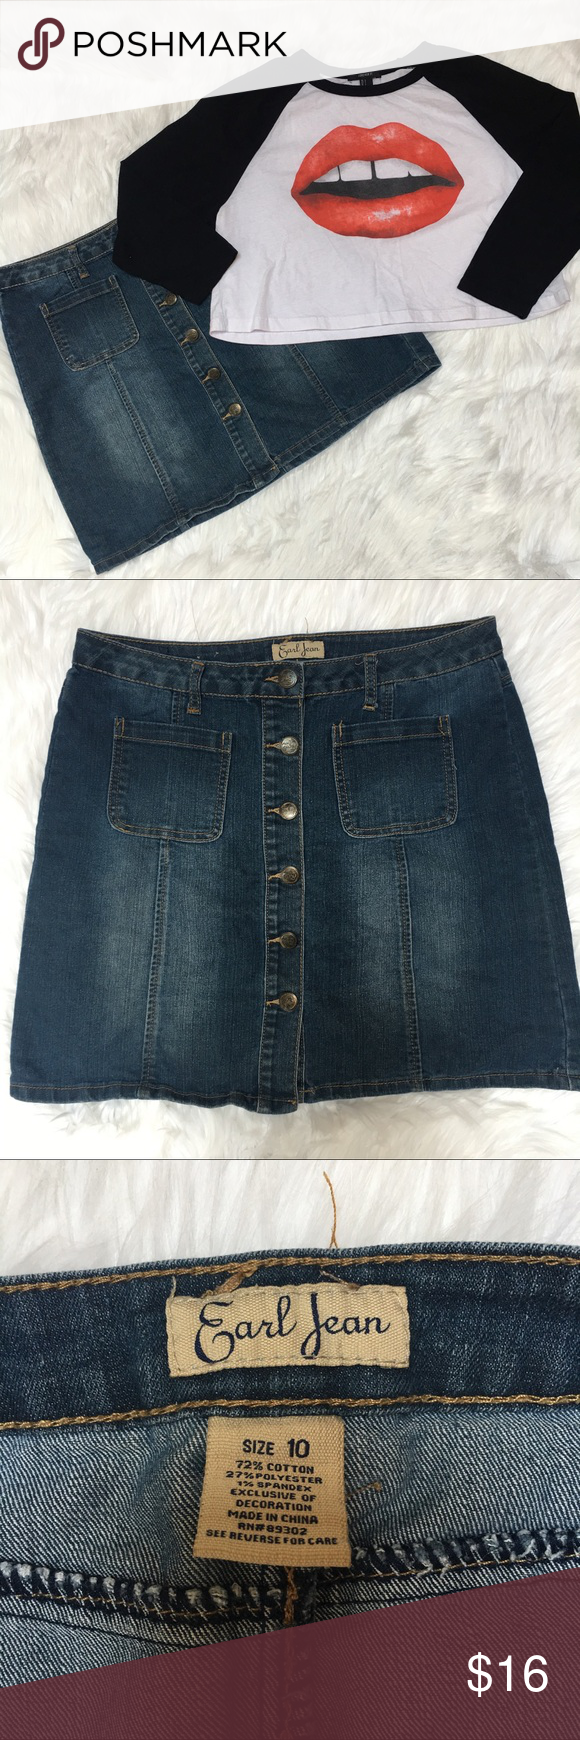 "Earl Jean Button Down Denim Skirt Size 10 Excellent Condition Denim skirt. Size 10. 16"" across the waist laying flat. Length- 17"" Earl Jeans Skirts"